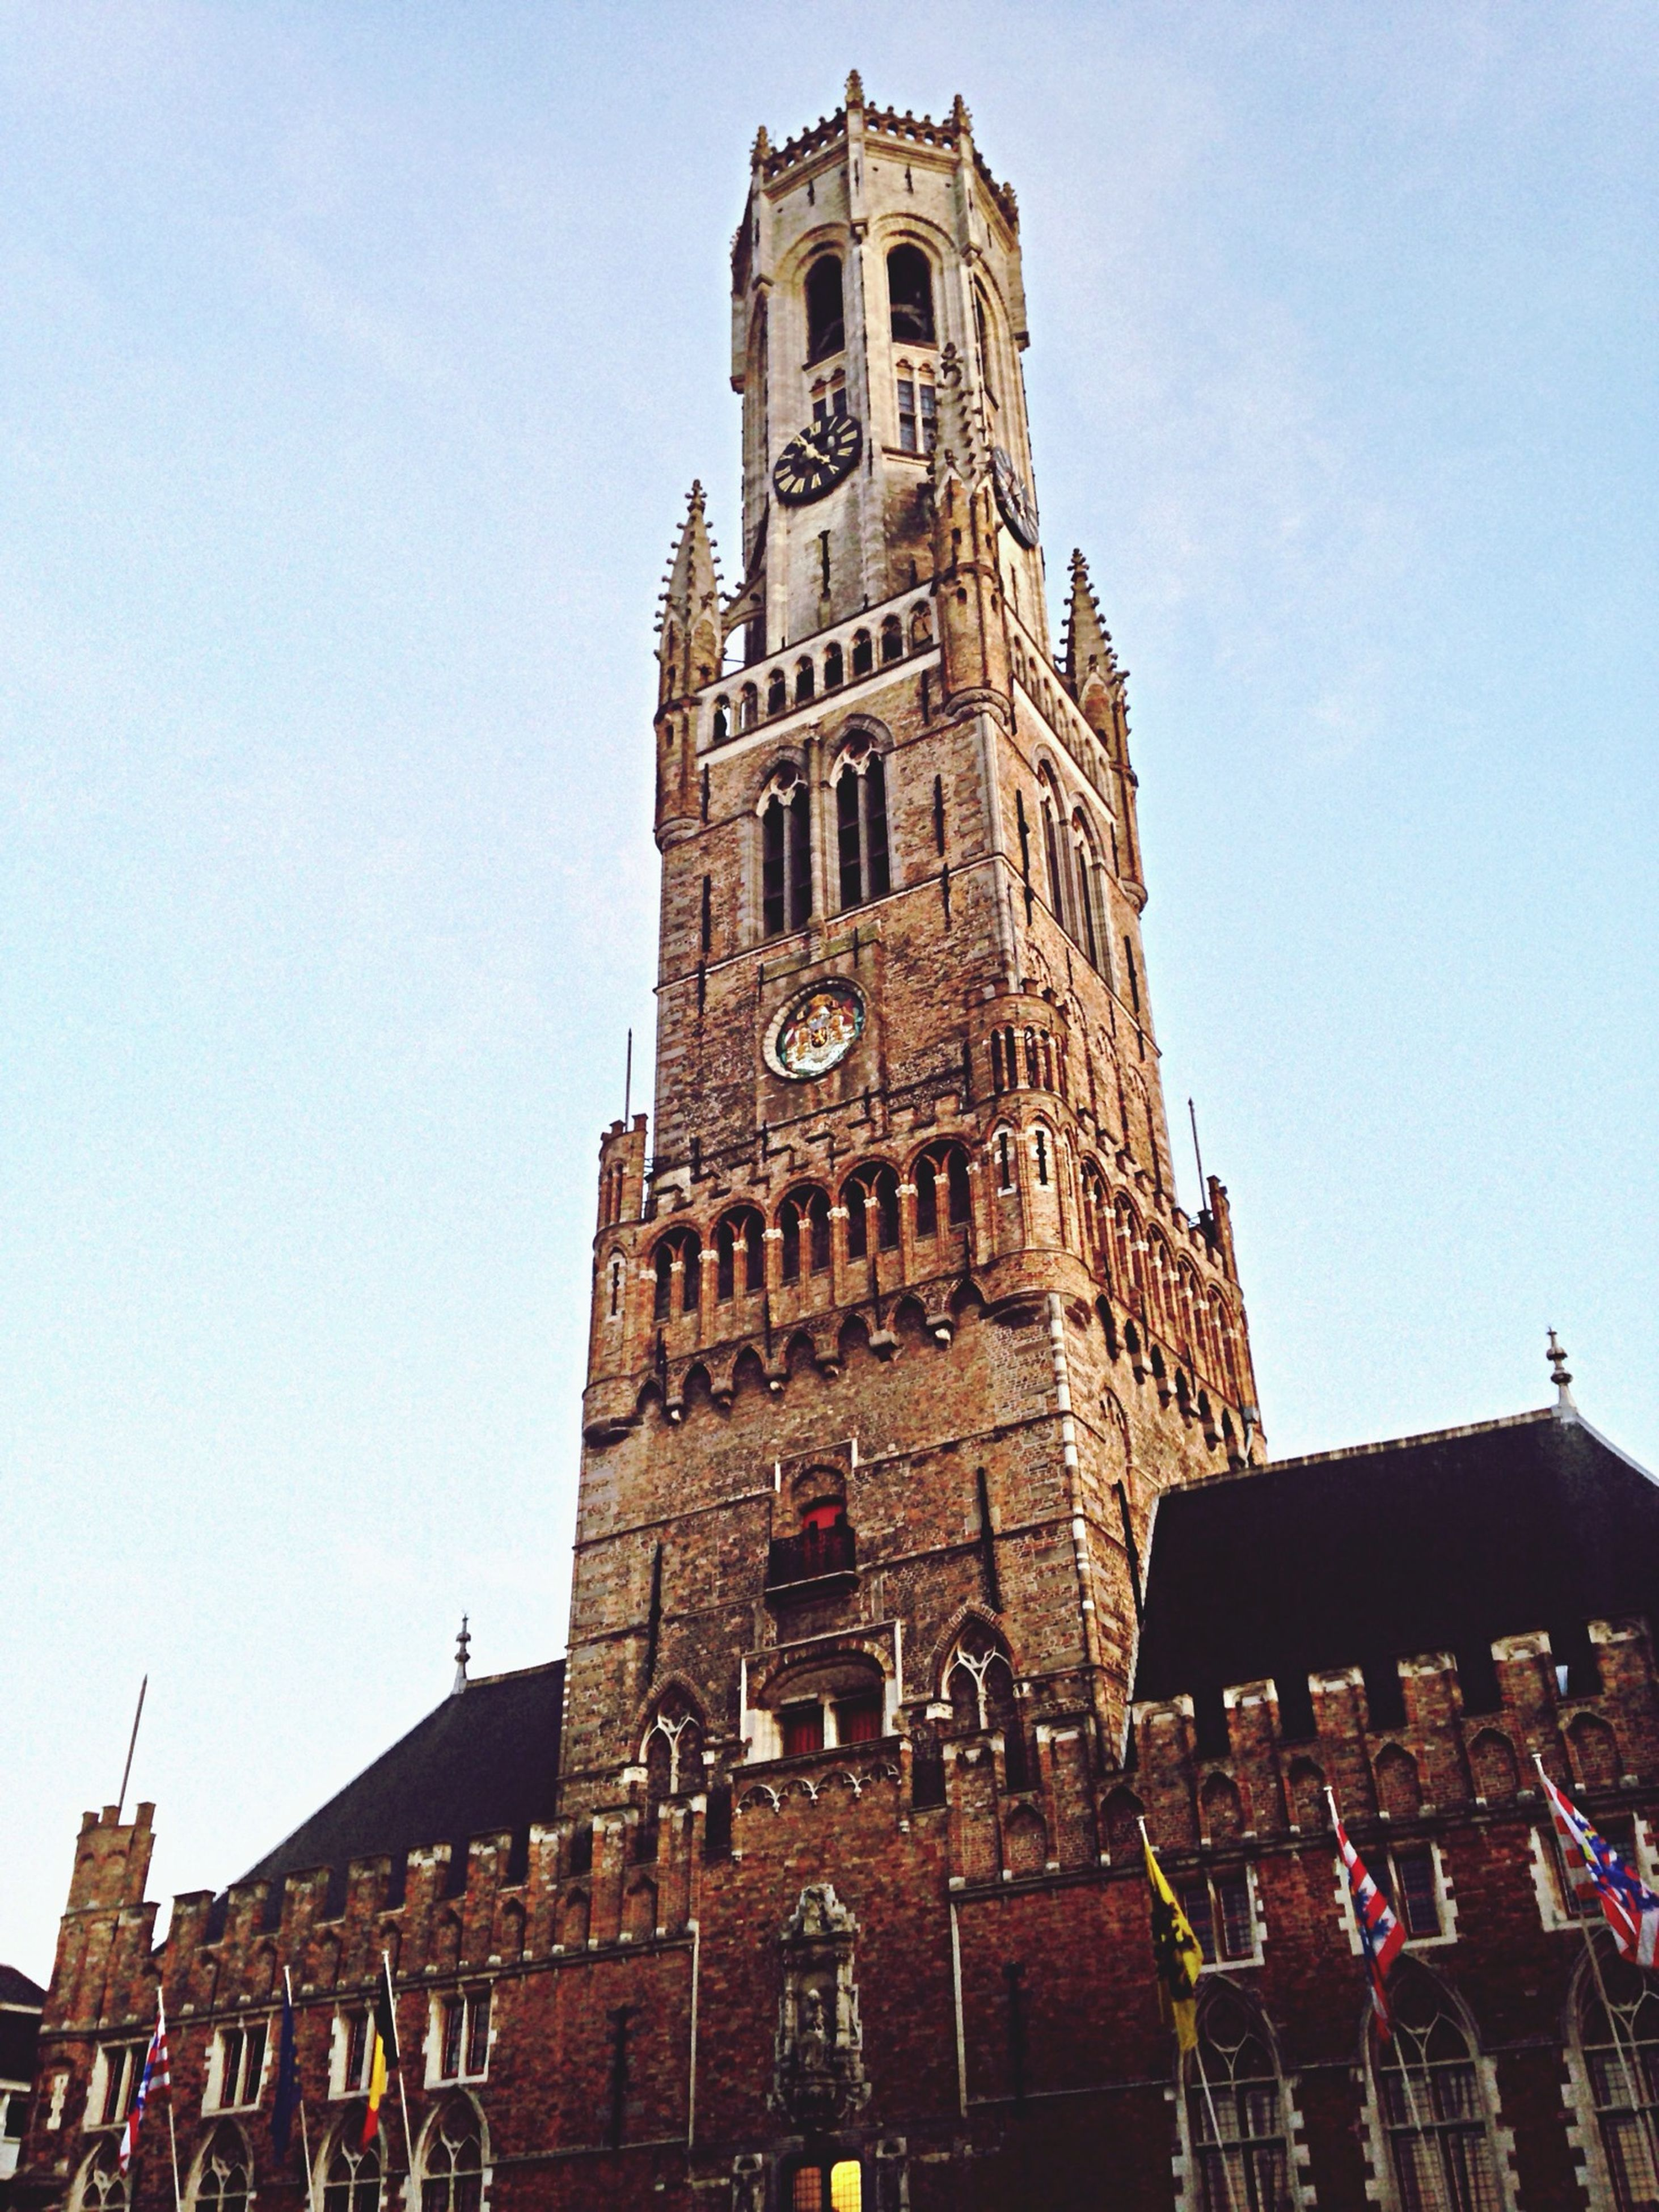 architecture, building exterior, built structure, clear sky, low angle view, history, tower, clock tower, travel destinations, famous place, religion, place of worship, tourism, old, copy space, travel, spirituality, city, church